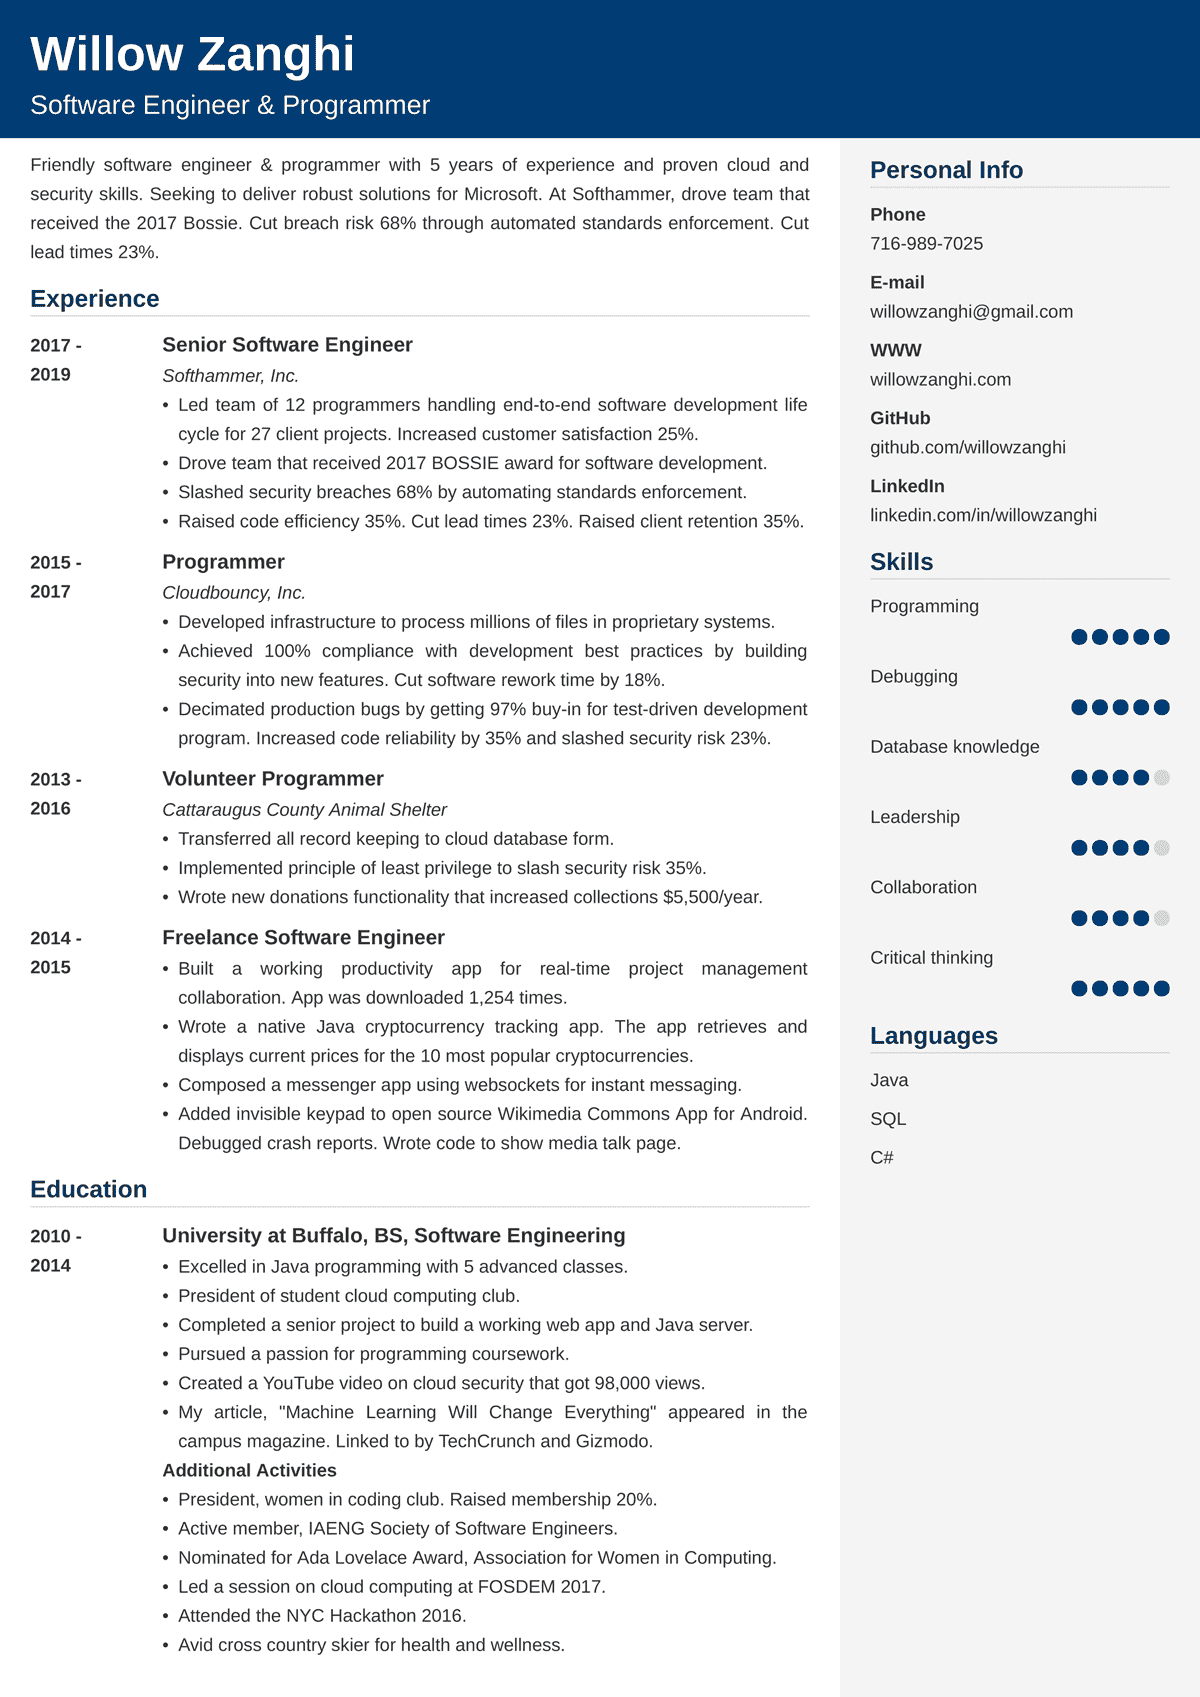 Software Engineer Resume Template—25+ Examples and Writing Tips